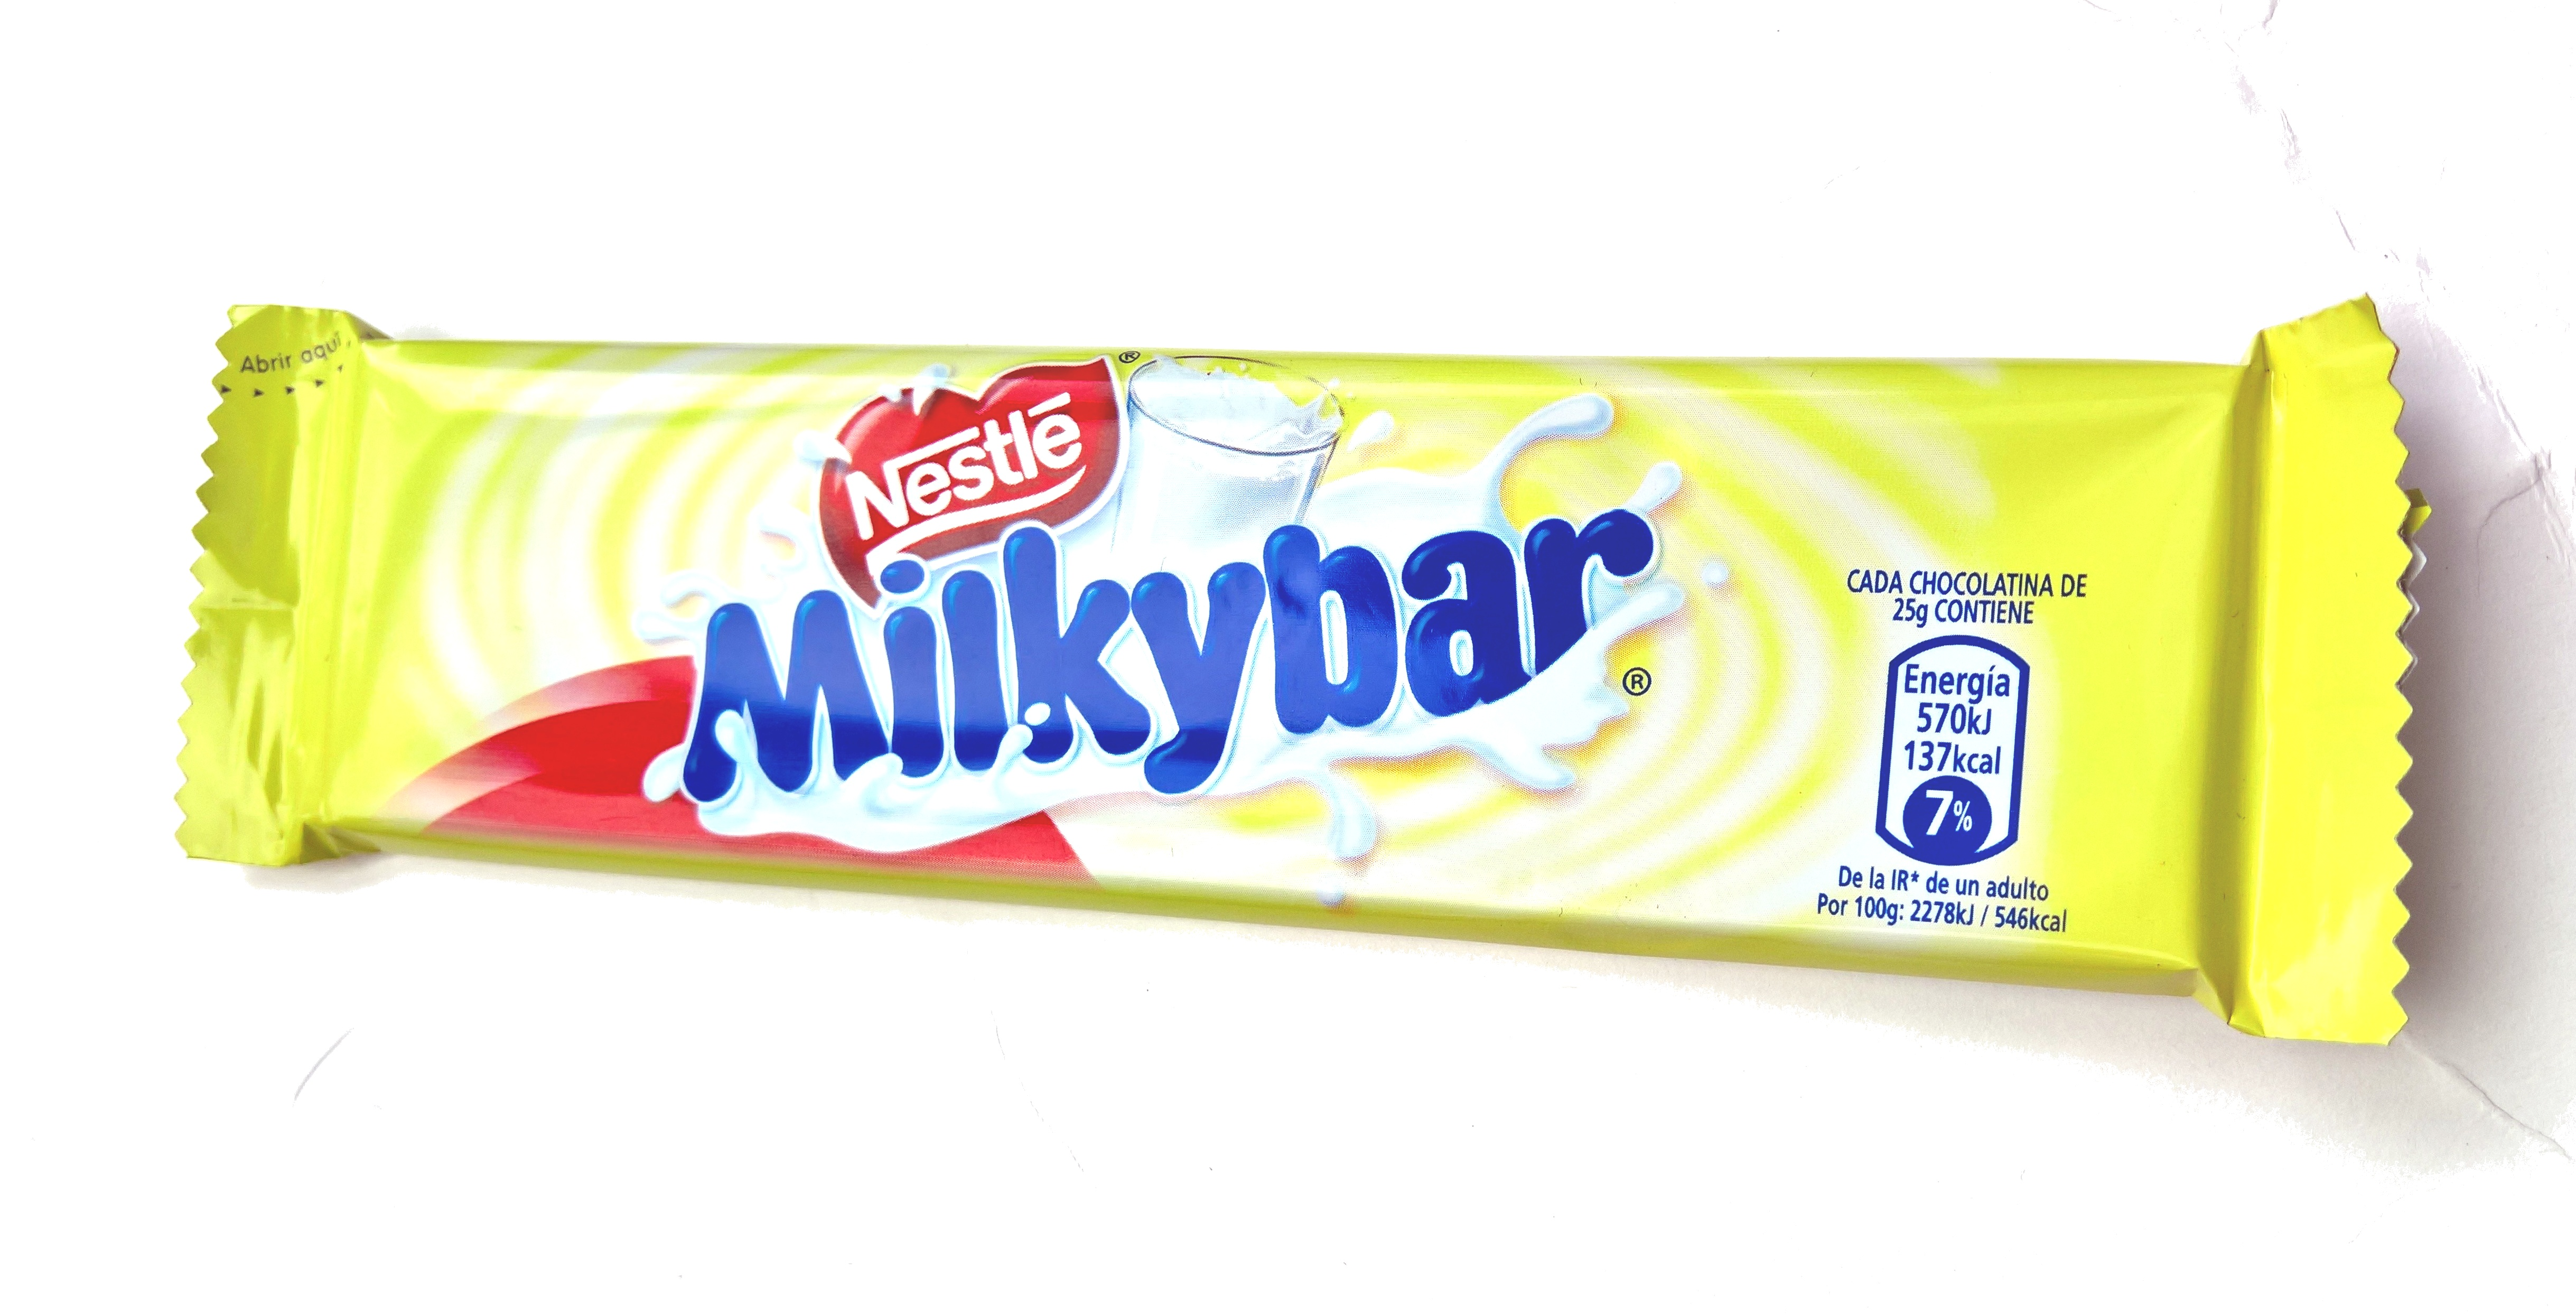 nestle milky bar product line extentsion marketing essay The love for chocolate is a sweet spot for many chocolate is also one of the world's oldest candies and originally discovered over 2,000 years ago here is a series of catchy chocolate slogans from some of the most known brands of manufacturing chocolate candy these popular slogans from existing.